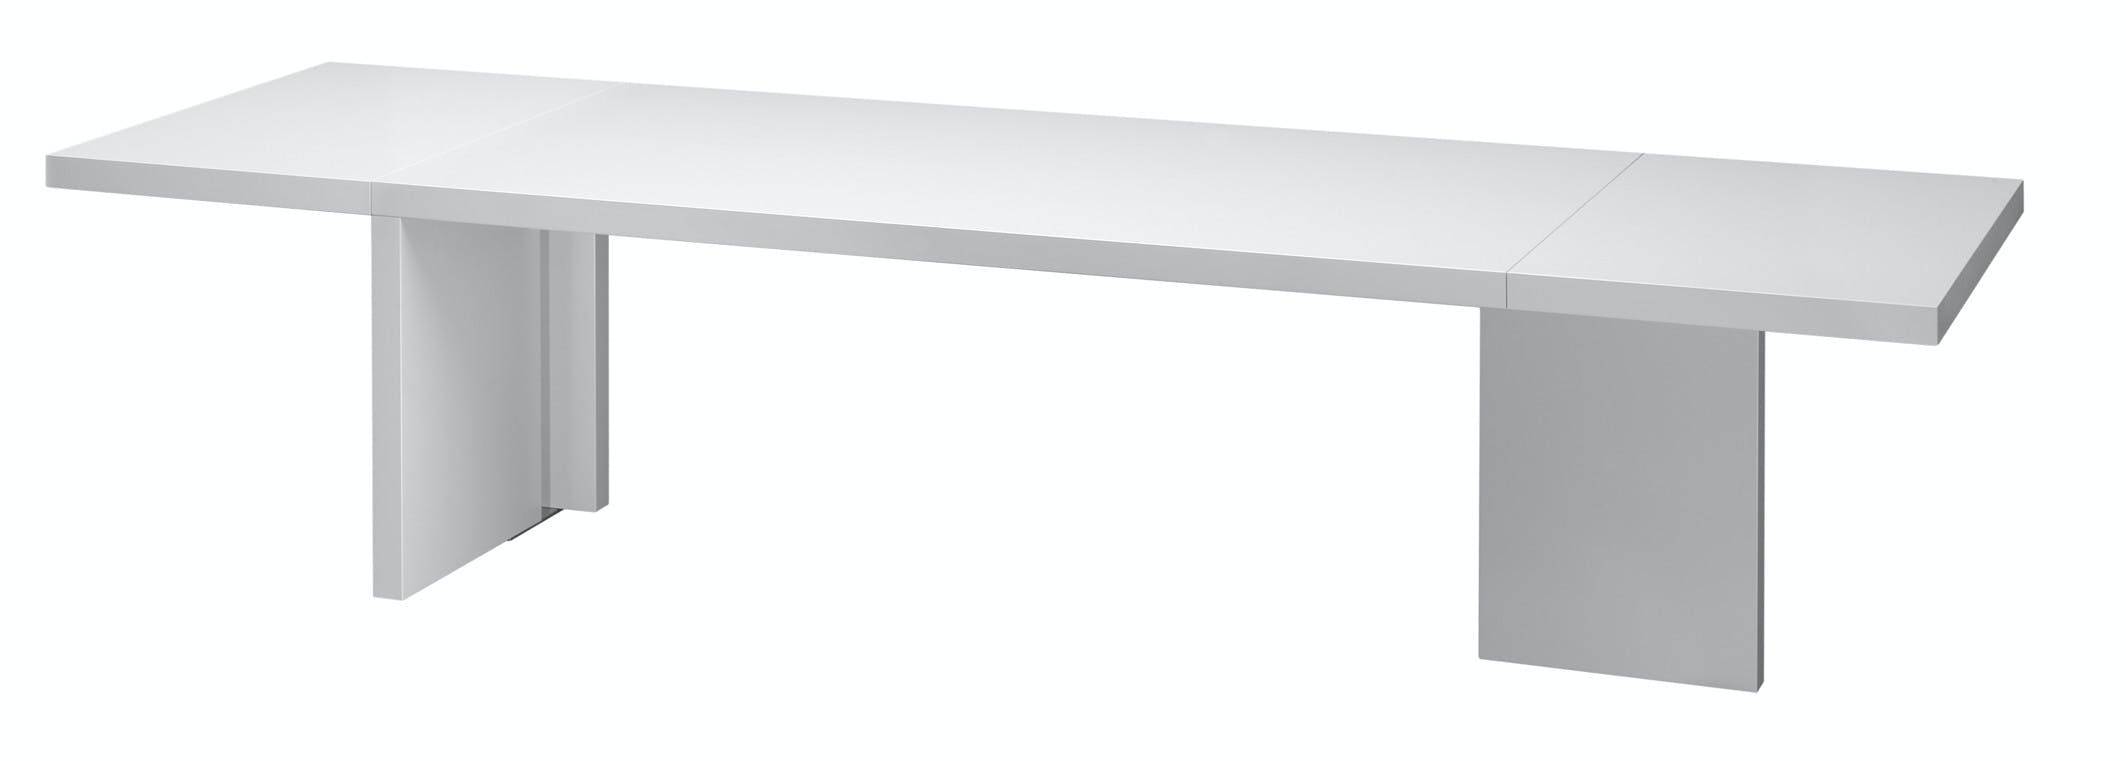 E15-furniture-isaac-table-white-angle-haute-living